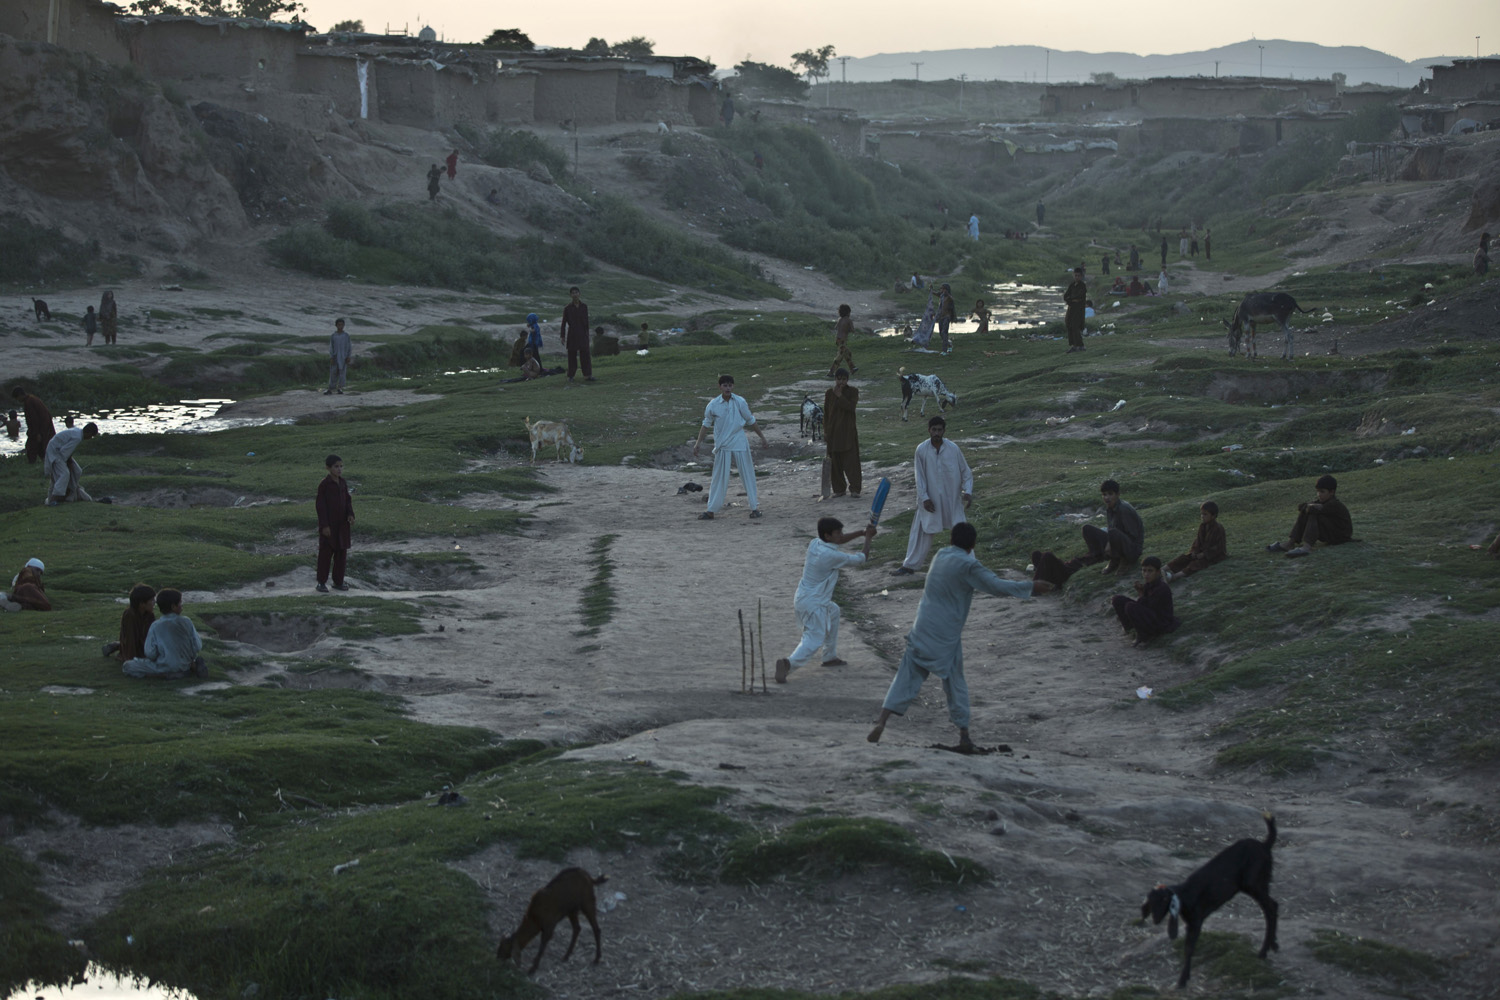 June 3, 2014. Internally Displaced Pakistanis from tribal areas and Afghan refugees play cricket, on the outskirts of Islamabad, Pakistan.